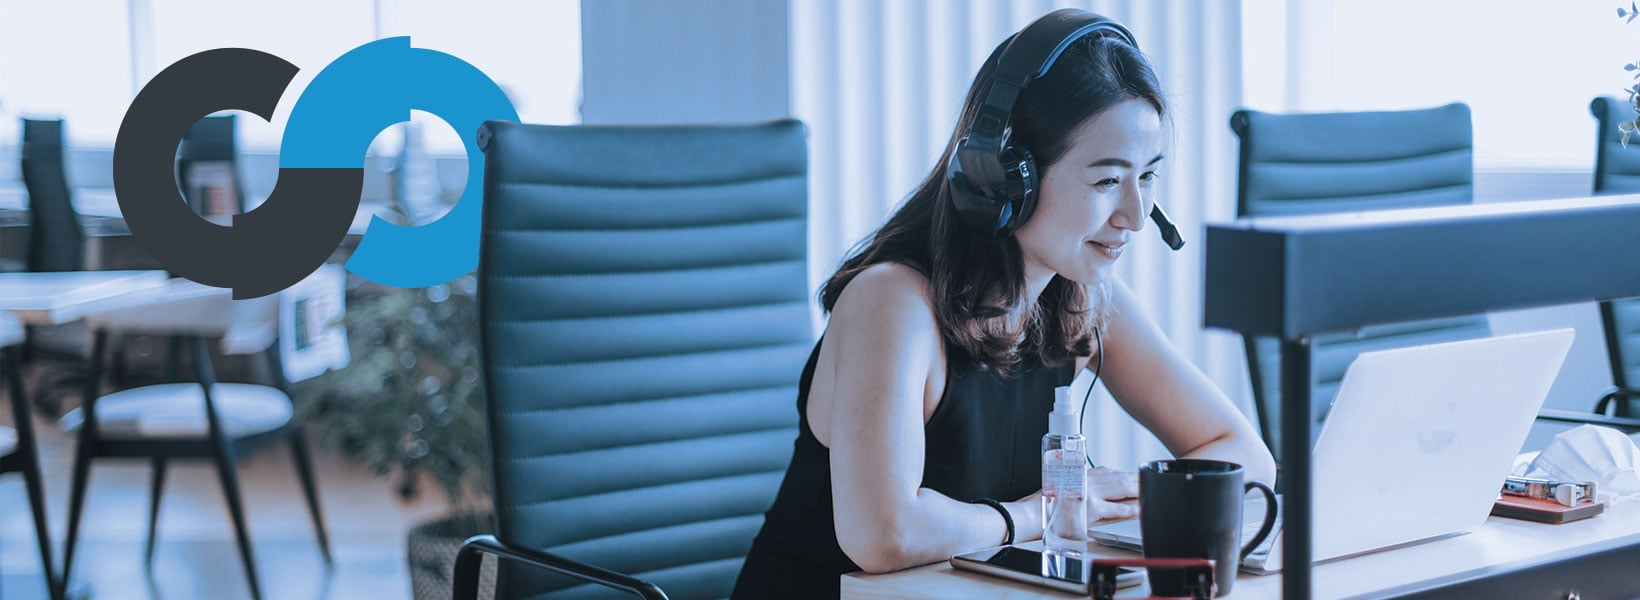 6 Customer Service Skills for a Positive Customer Experience